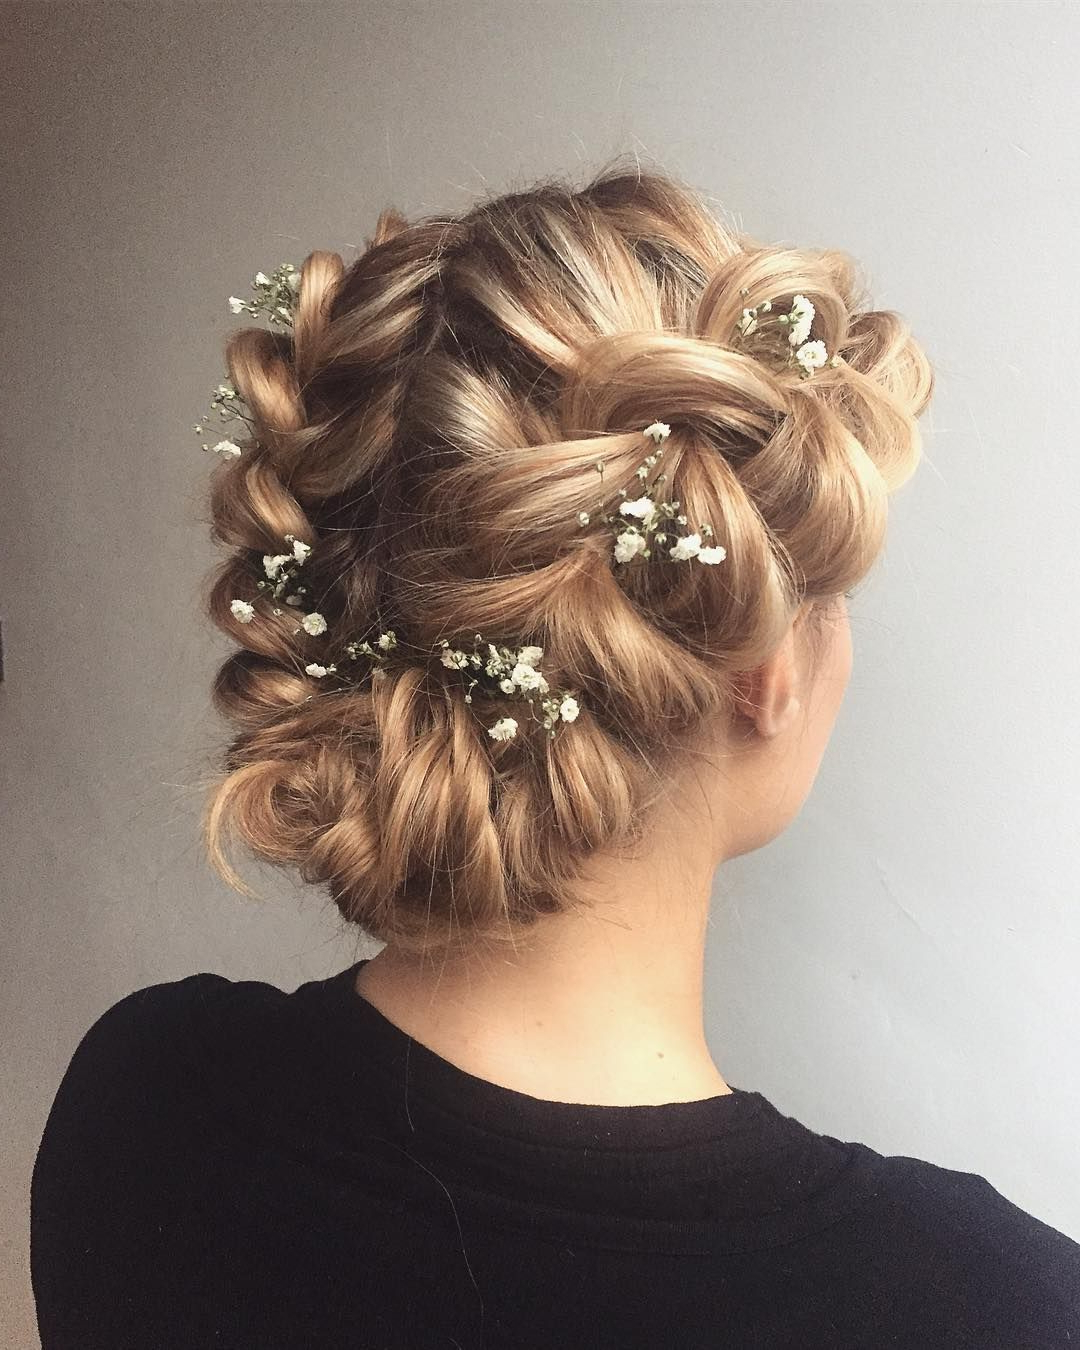 Bridal Crown Braid Hairstyle,textured Updo, Updo Wedding Inside Fashionable Messy Crown Braid Updo Hairstyles (View 6 of 20)